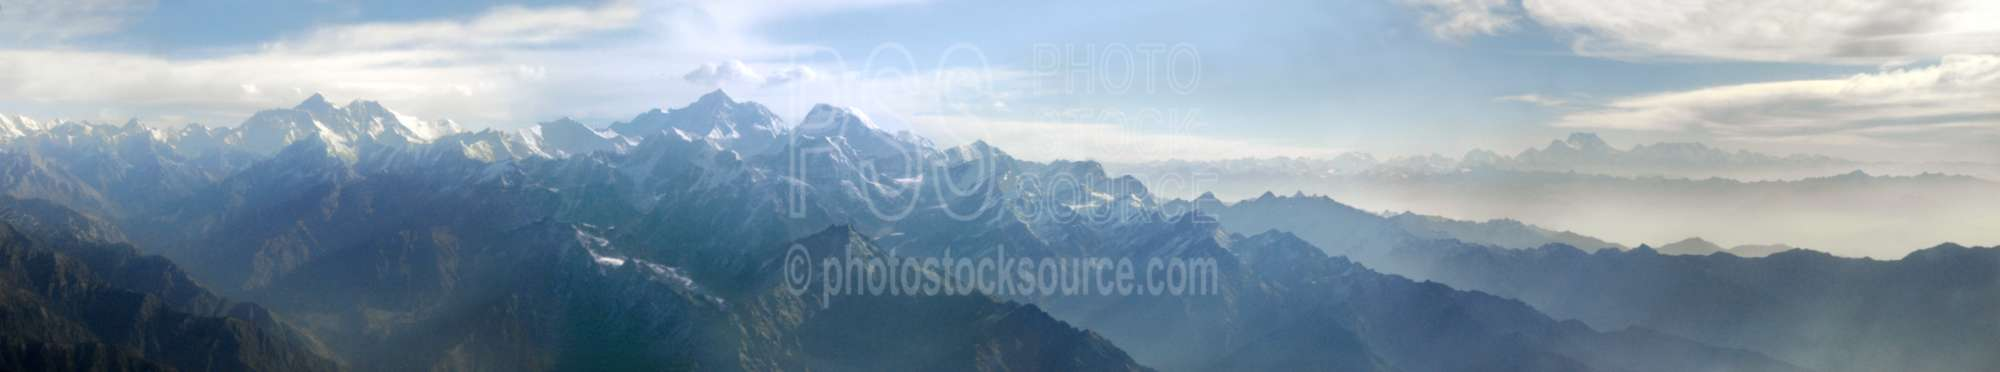 Mt. Everest in the Himalayas